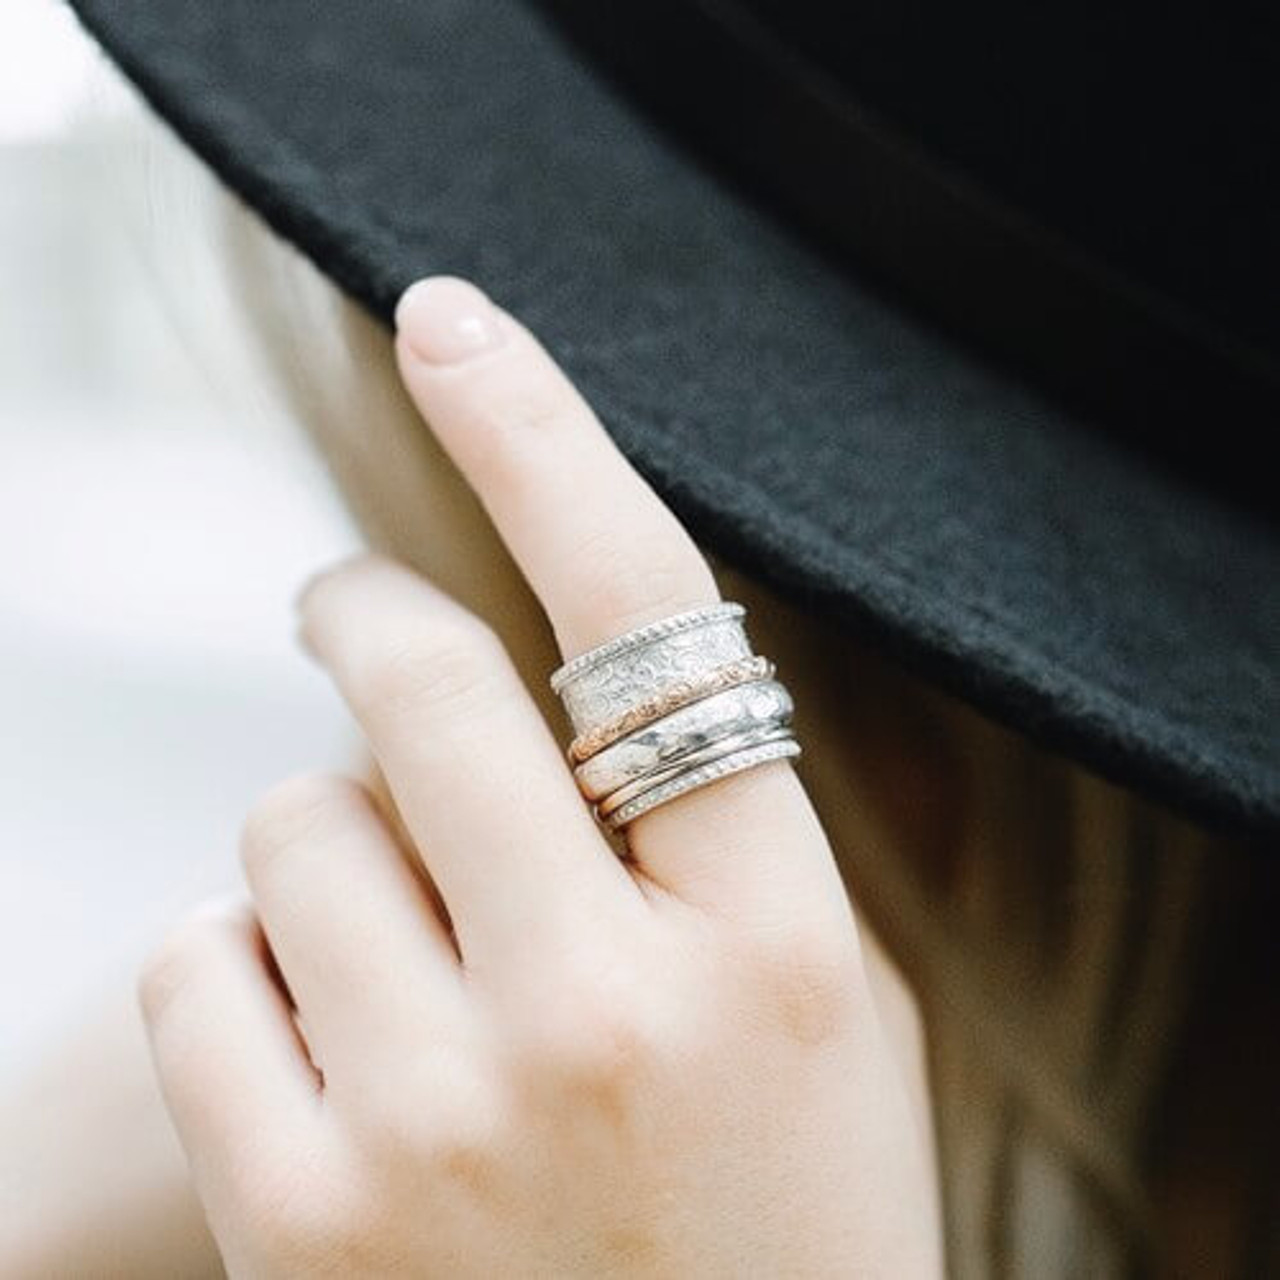 Thumb Ring Wide Ring Spinning Ring Women Ring Valentine Gift Anxiety Ring Tow Bend Ring Spinner Ring Handmade Ring Meditation Ring